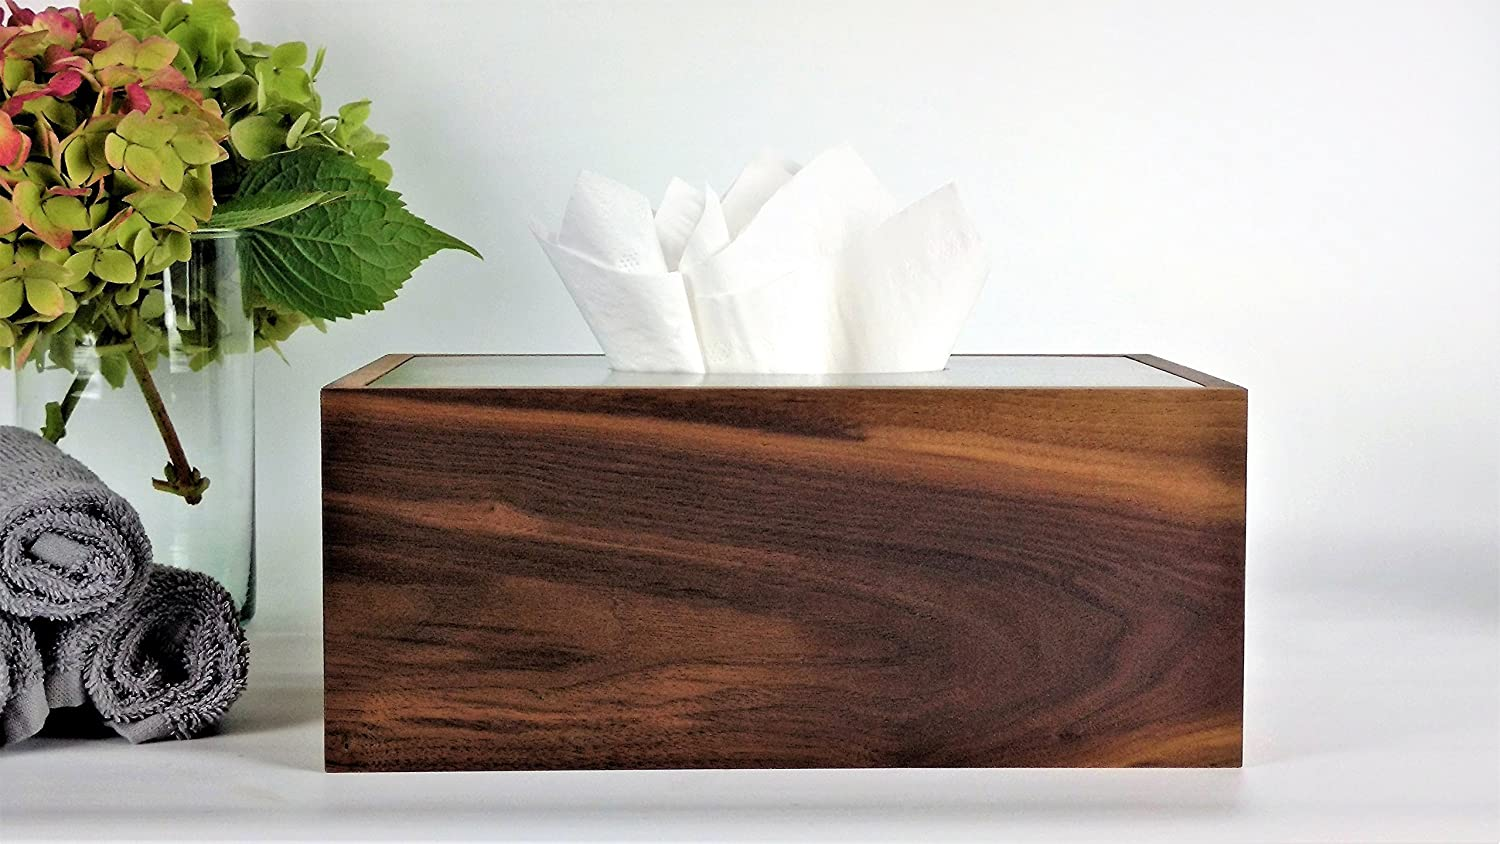 Tissue Box Cover Wood / Concrete Tissue Box Cover / Rectangular Kleenex Tissue Box Cover Wood / Neutral Decor / Bathroom Organization / Bath